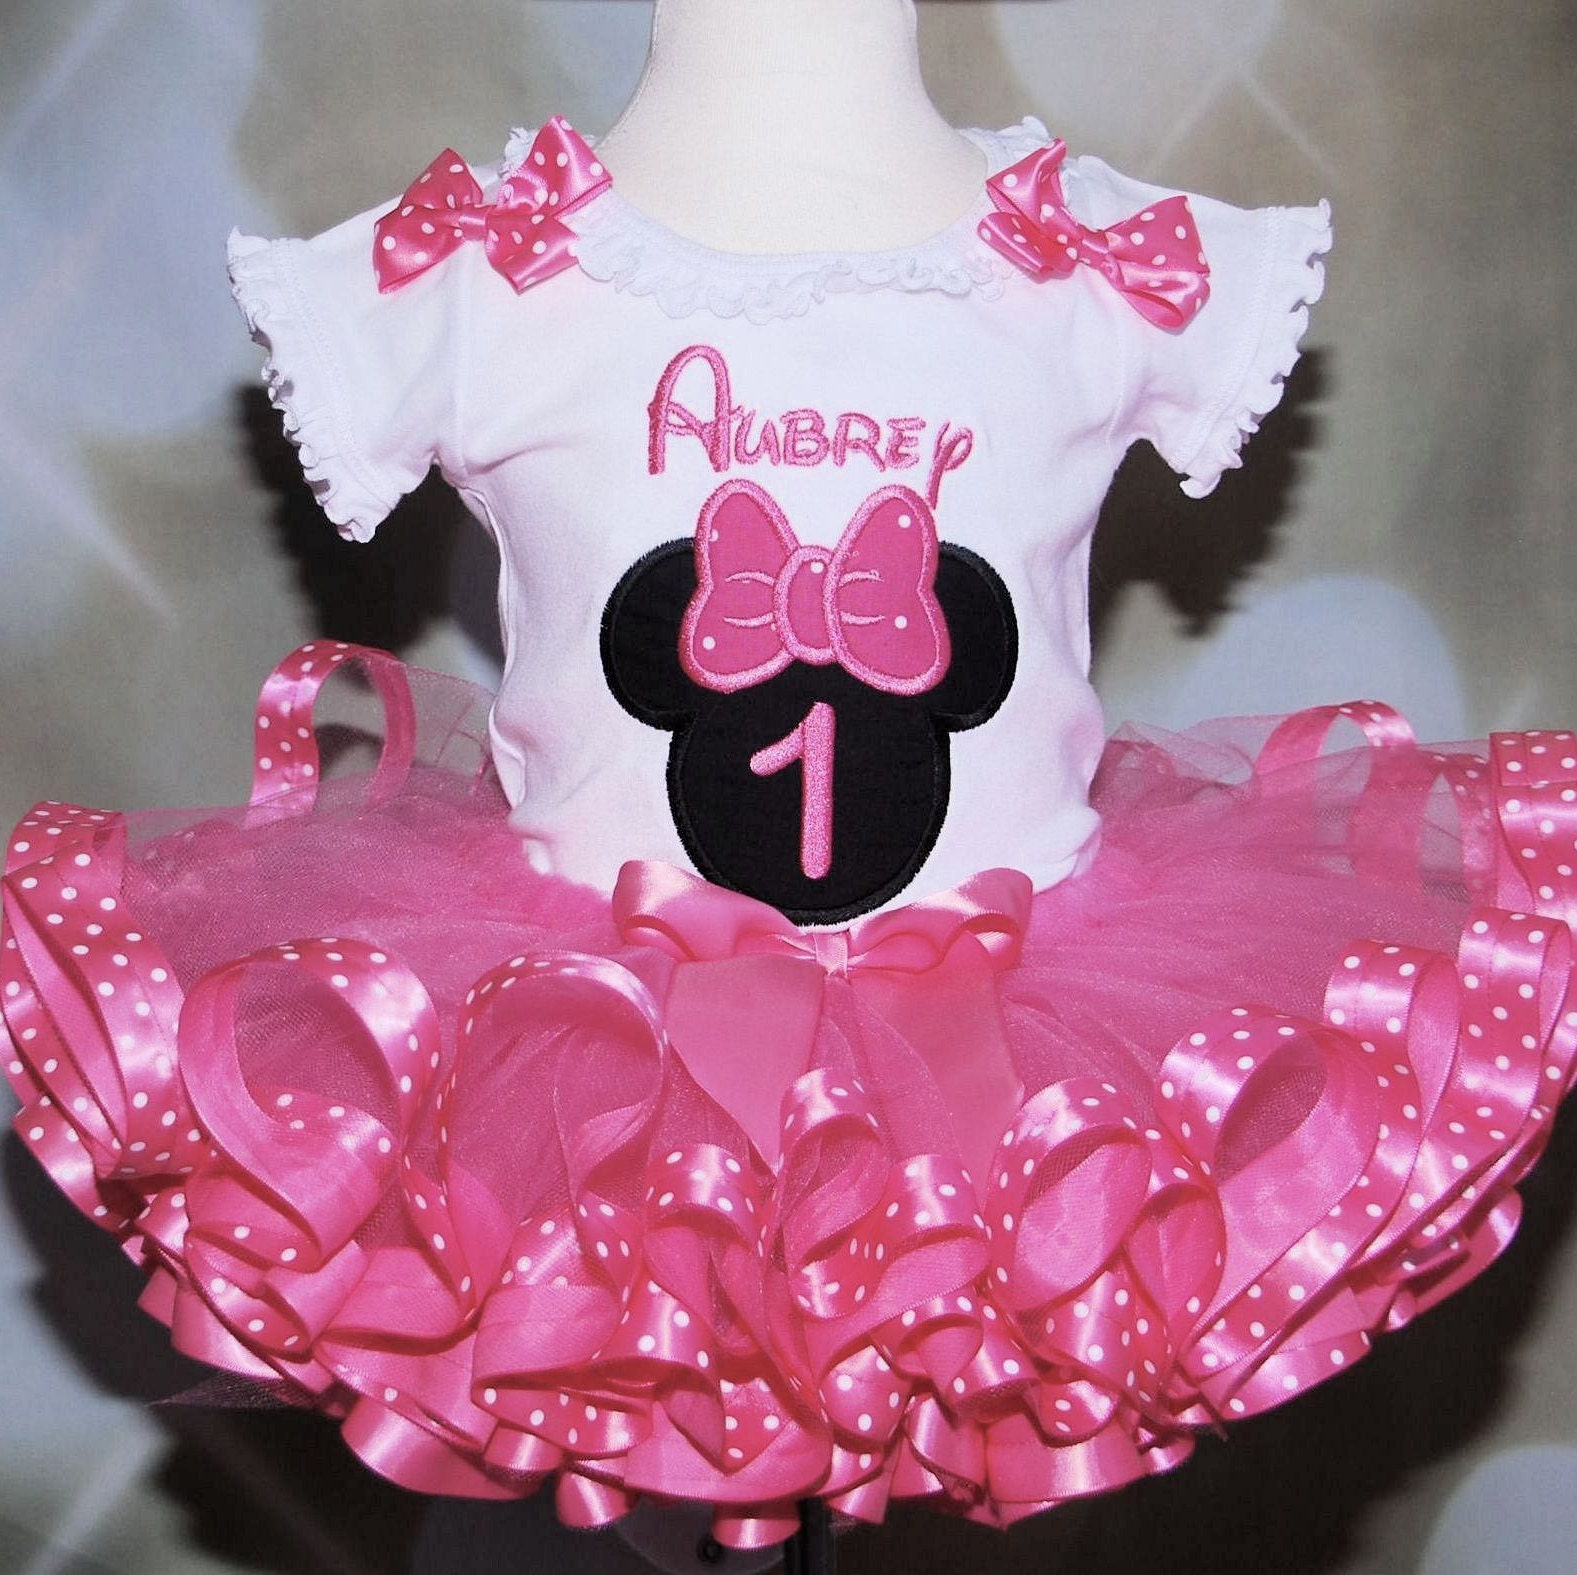 Minnie Mouse birthday outfit 1st birthday outfit minnie mouse tutu dress minnie mouse first birthday outfit minnie mouse birthday party tutu